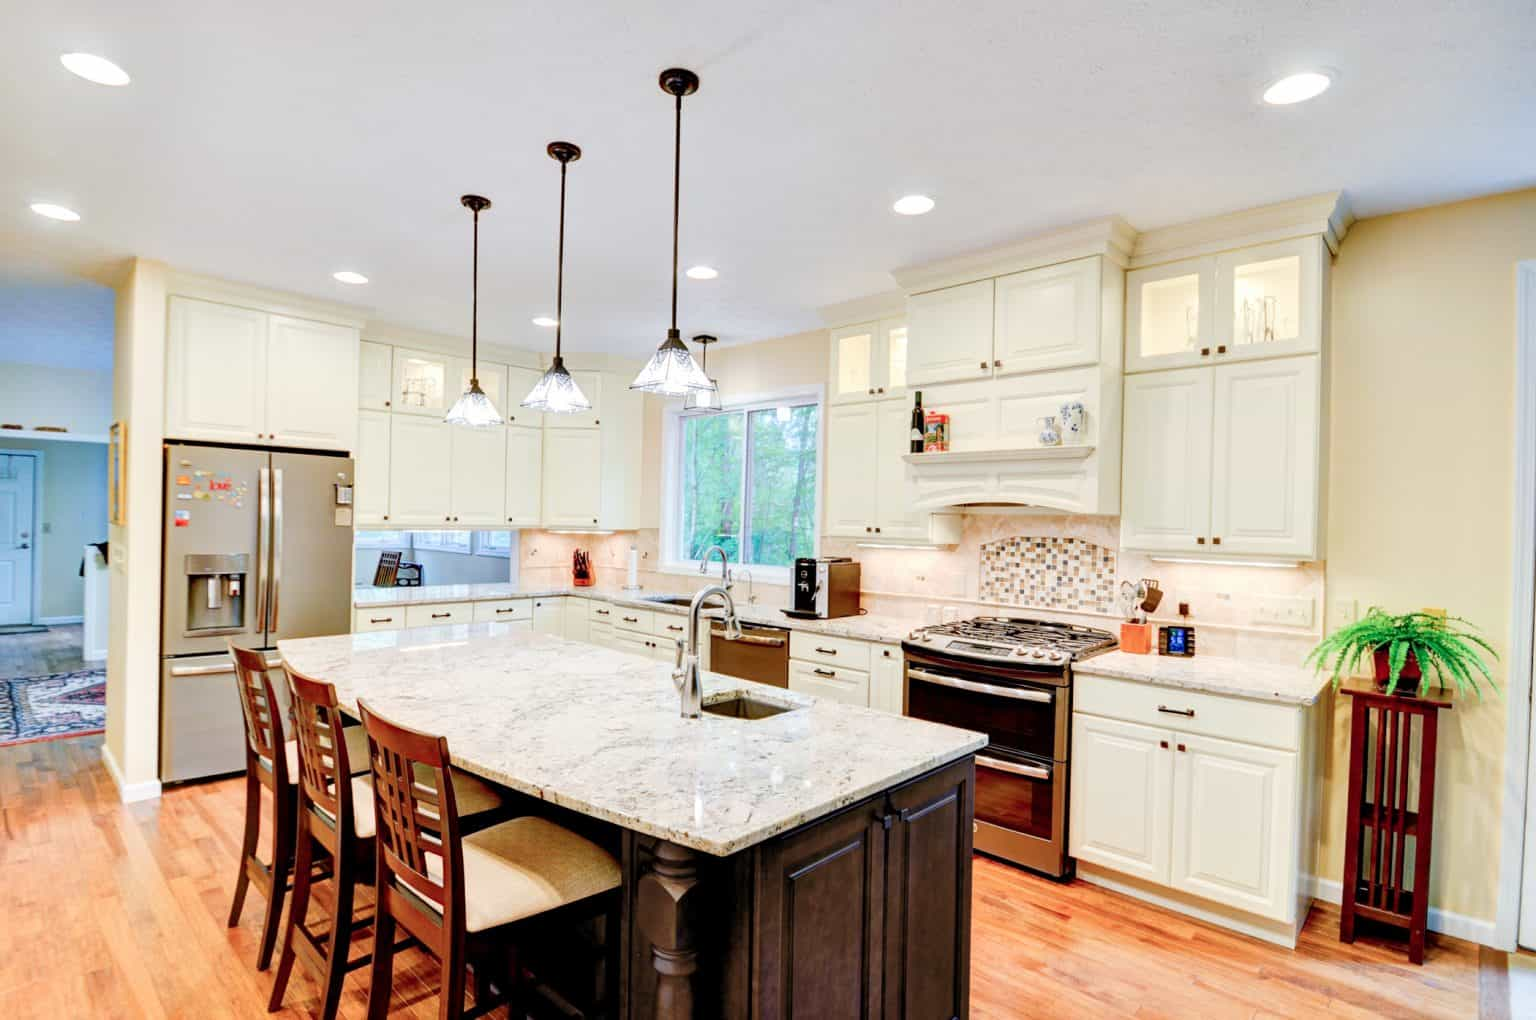 Virtual Kitchen Design The Future Of Kitchen Cabinets Is At Barrwood Cabinets Barrwood Cabinets